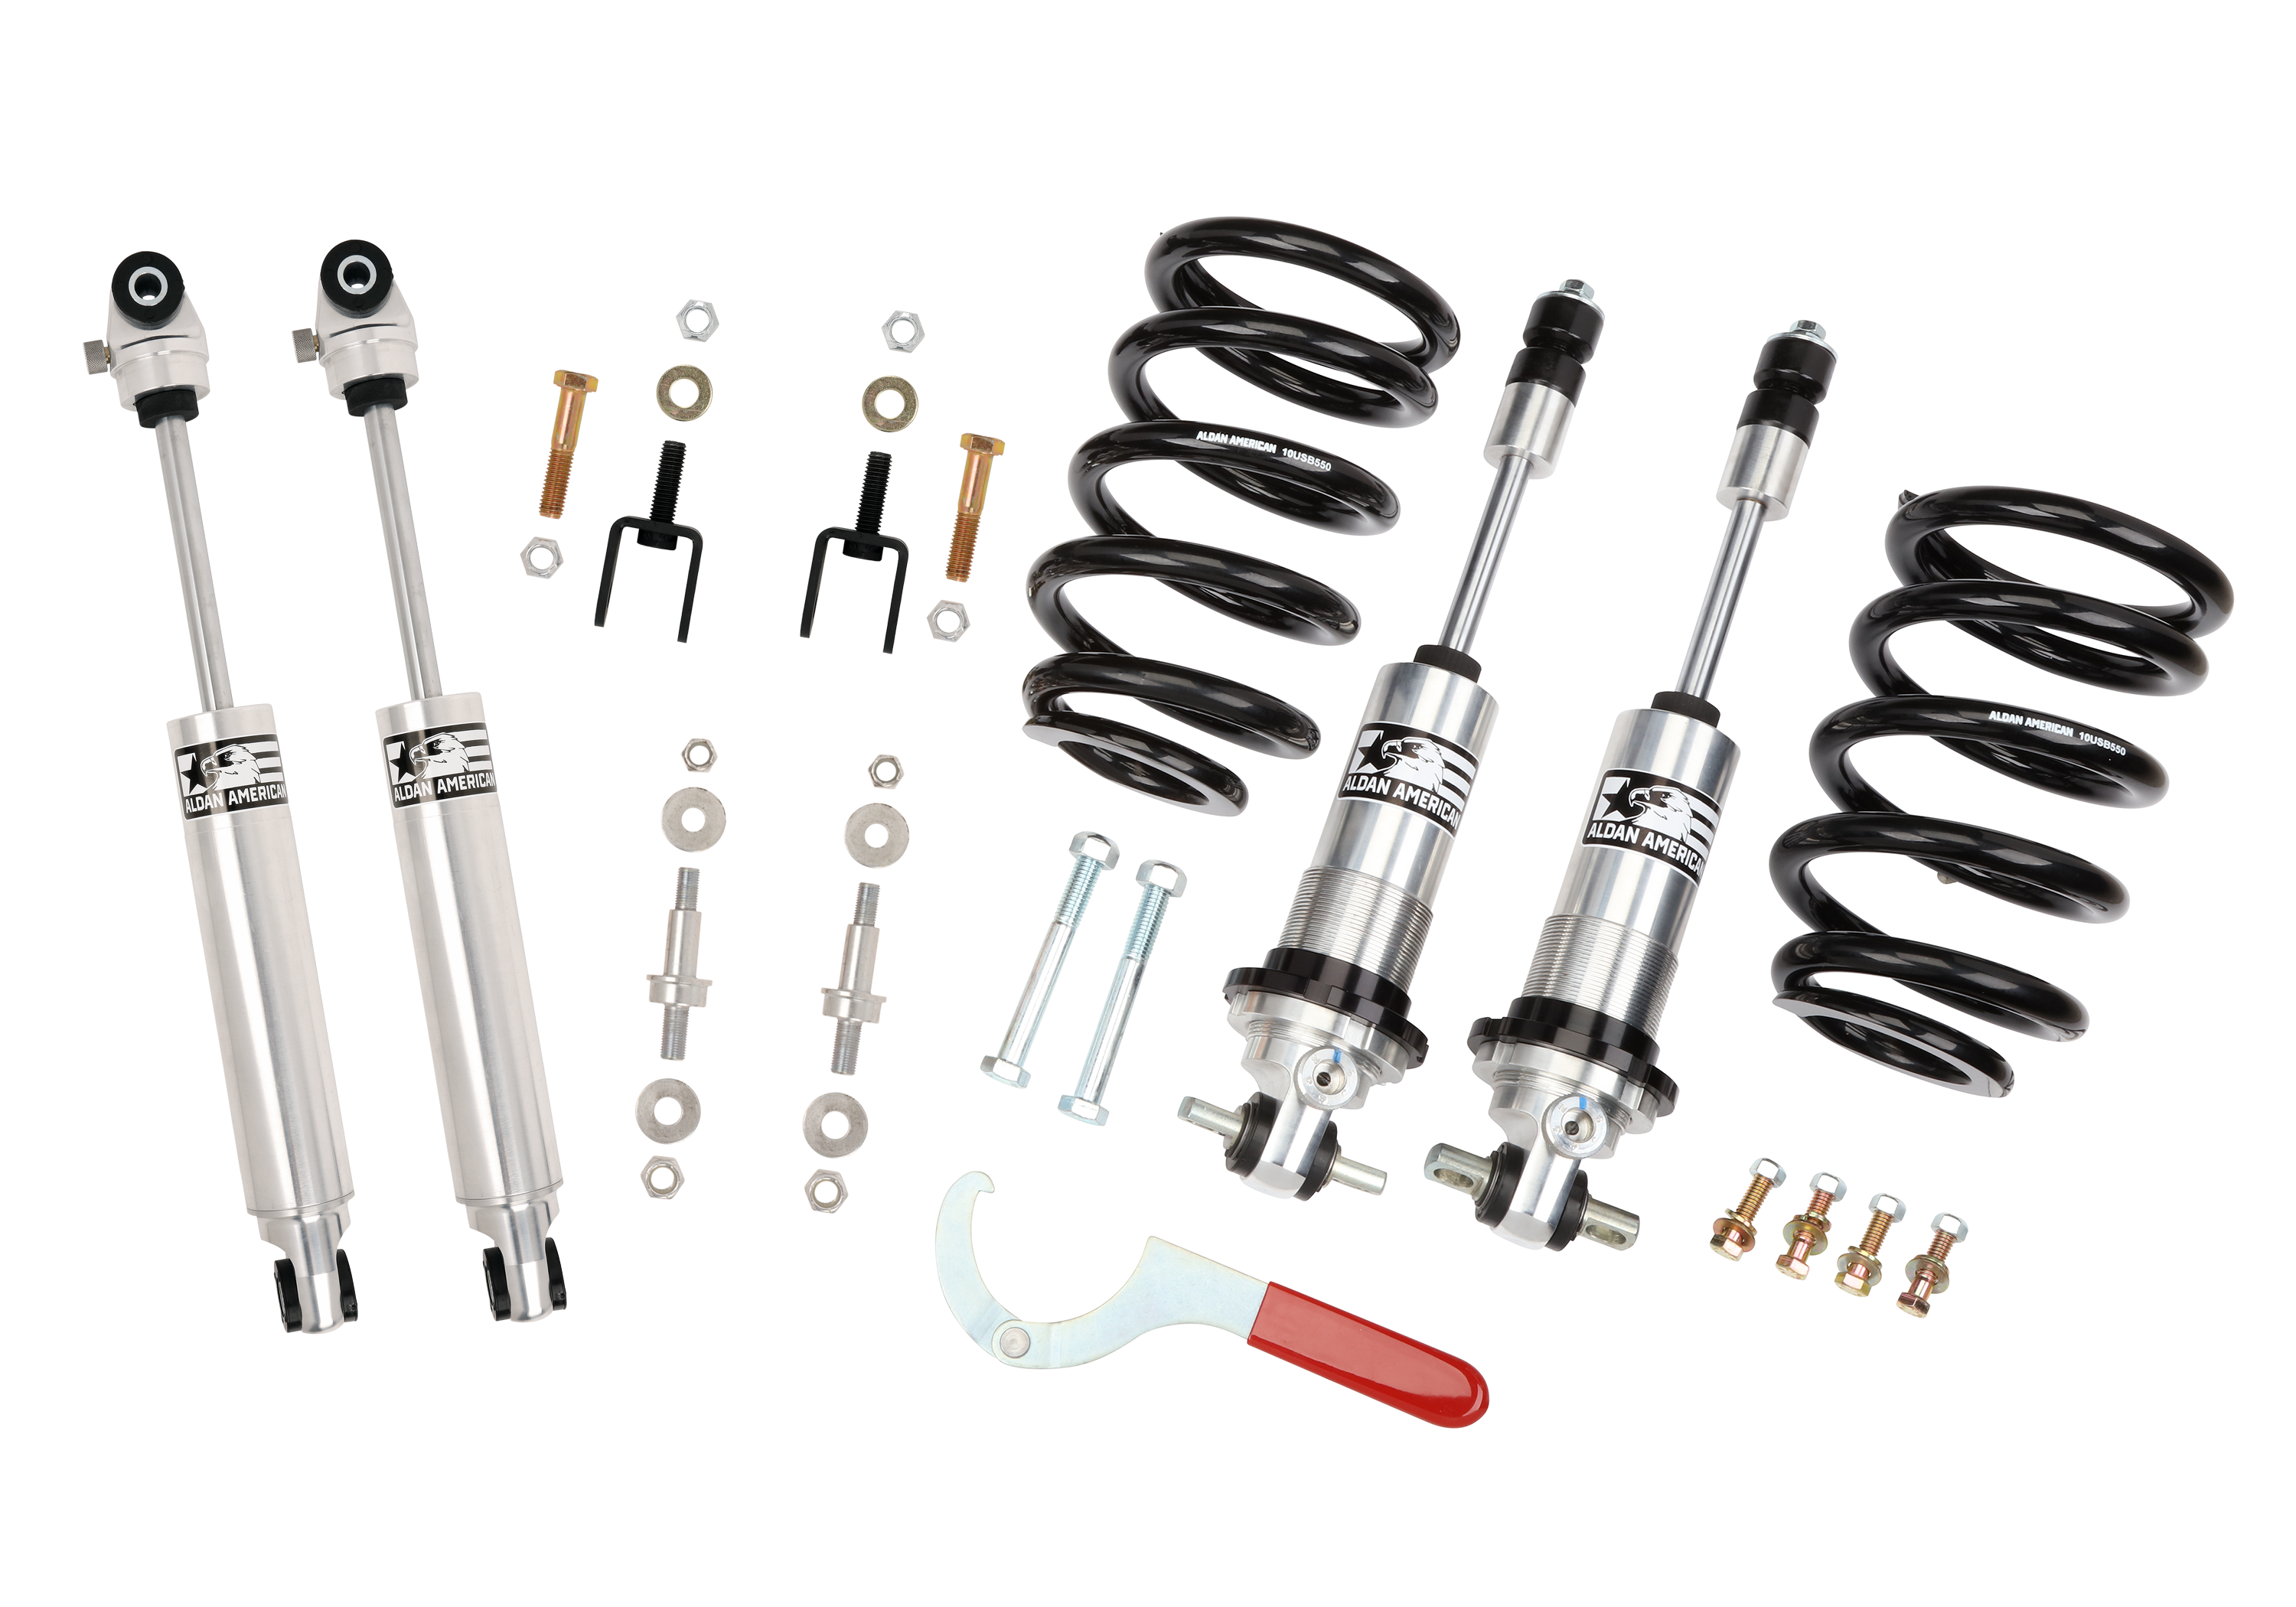 Aldan American 300161 Suspension Package, Road Comp, 72-79 Ford, Coilovers with Shocks, BB, Kit